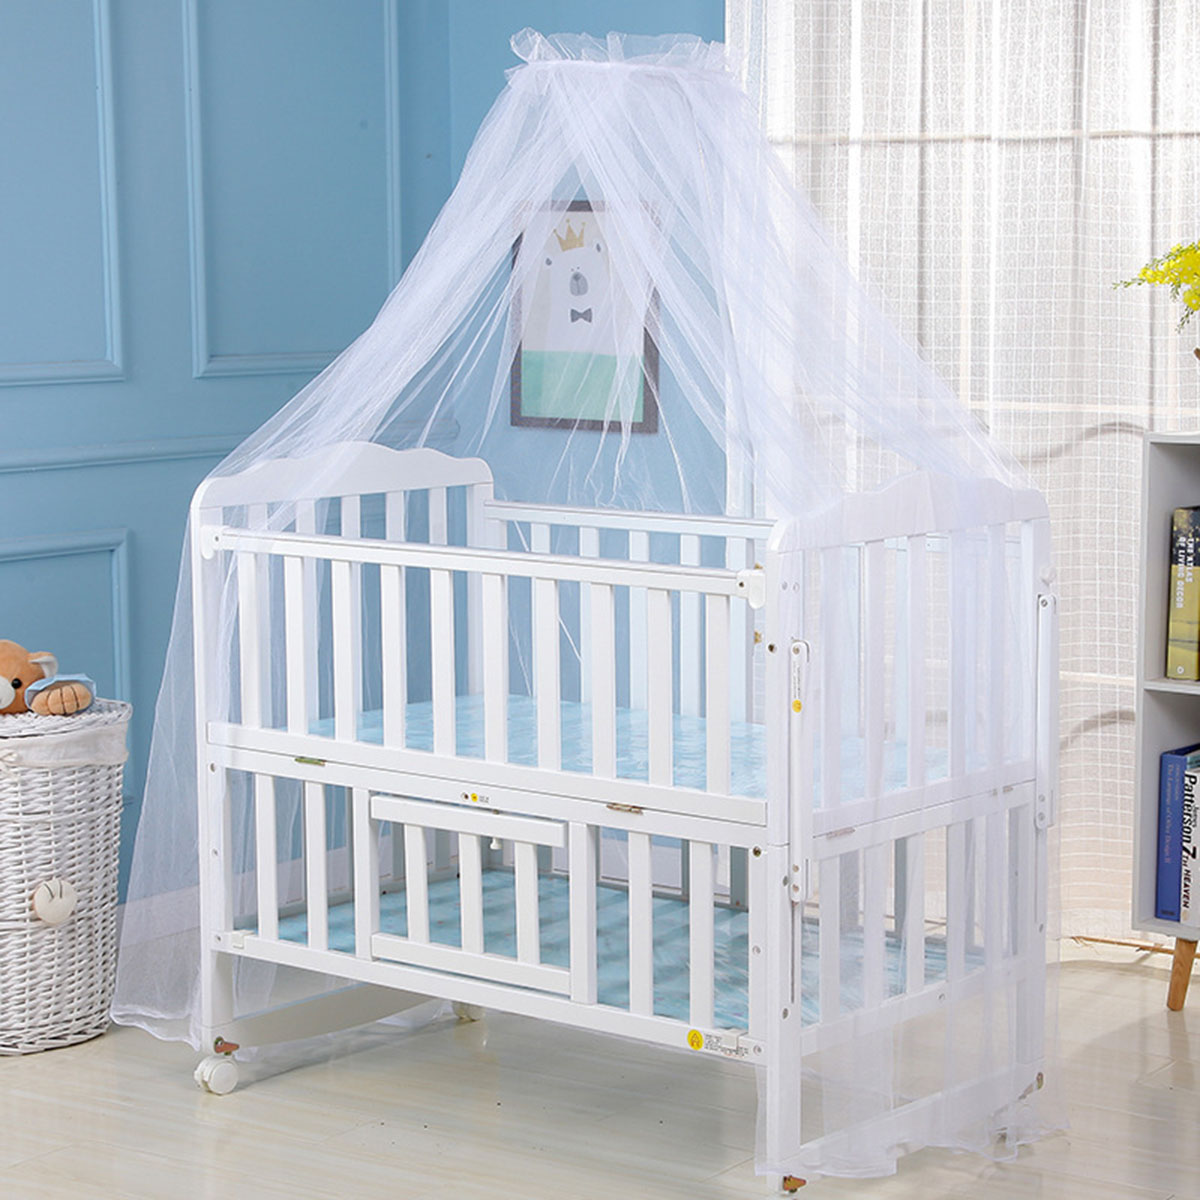 Baby Cradle Bedding Arched Yurt Bed Crib Netting Bedcover Mesh Mosquito Curtain